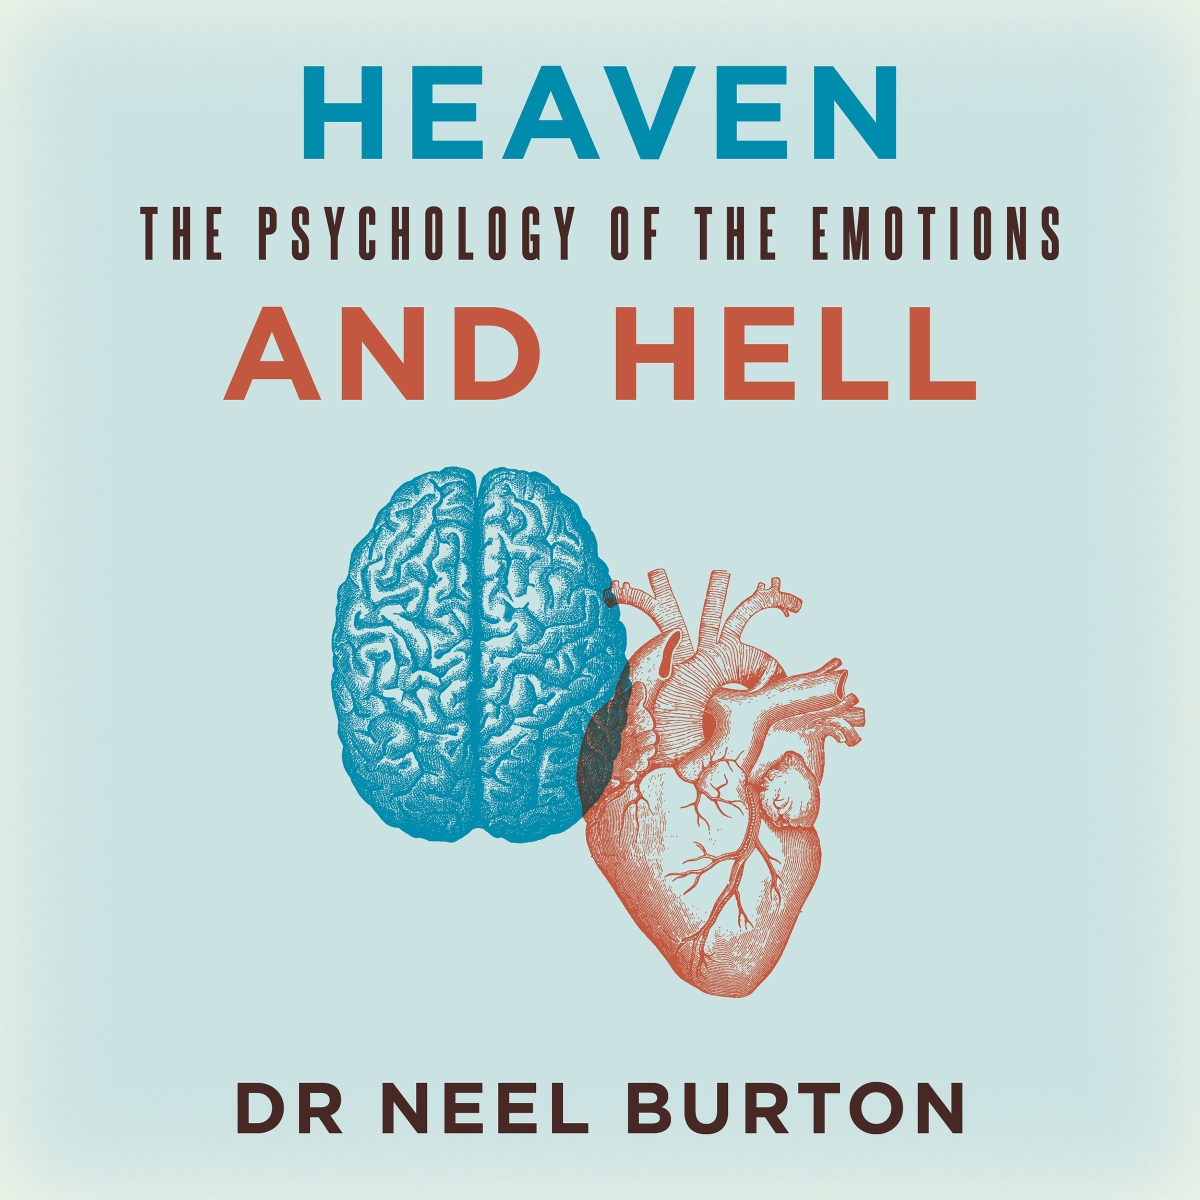 New Audiobook on theEmotions